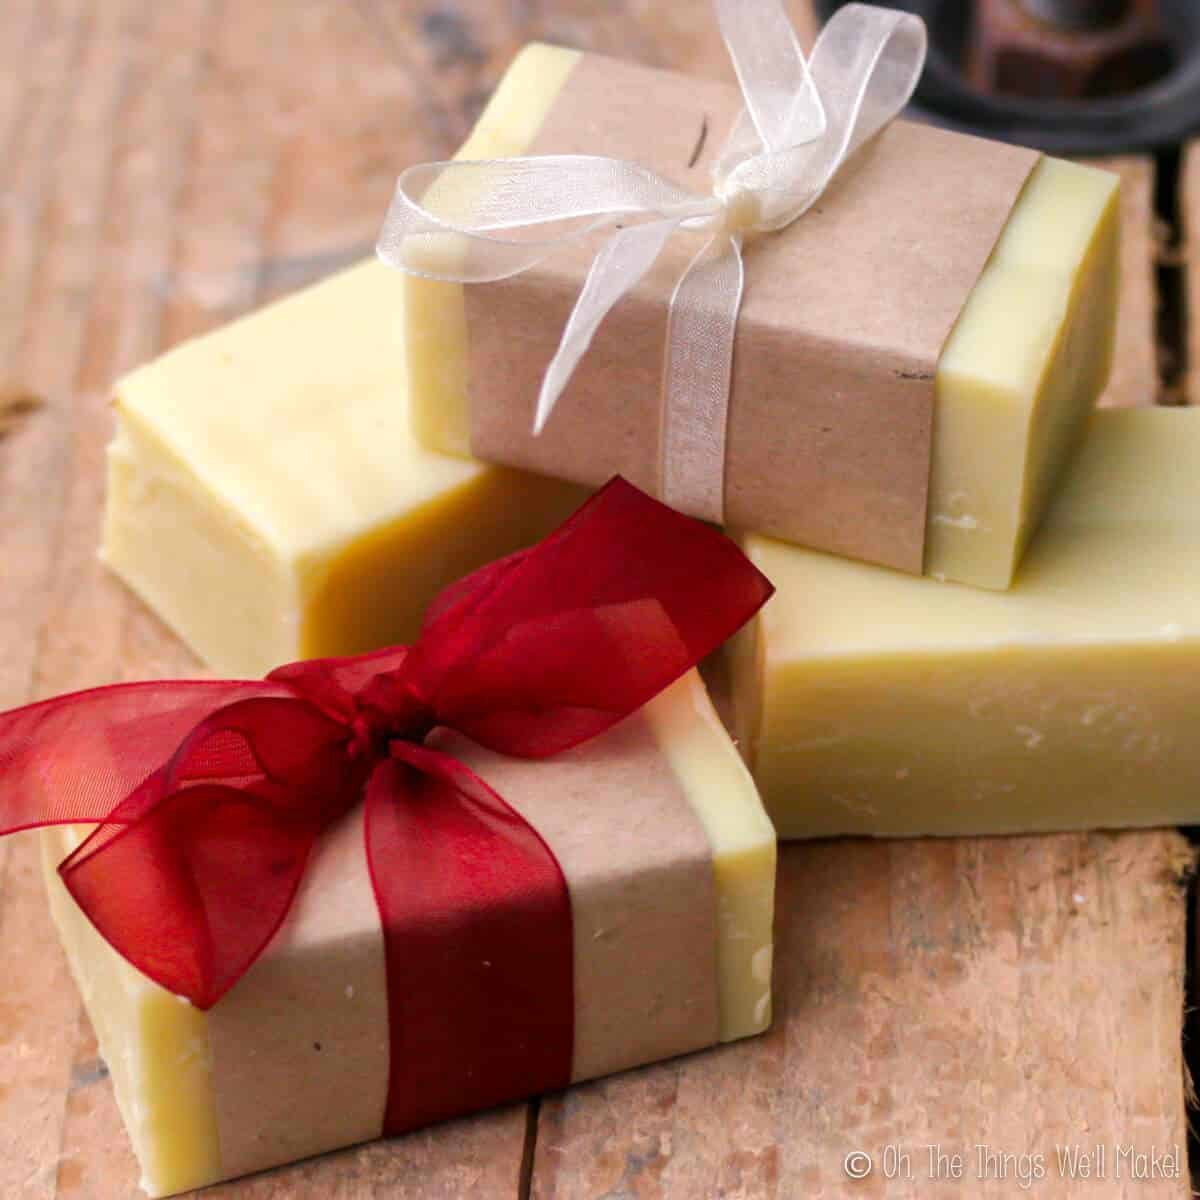 Closeup of 4 bars of homemade soap. Two of them have been wrapped in brown paper, which is secured with ribbons.